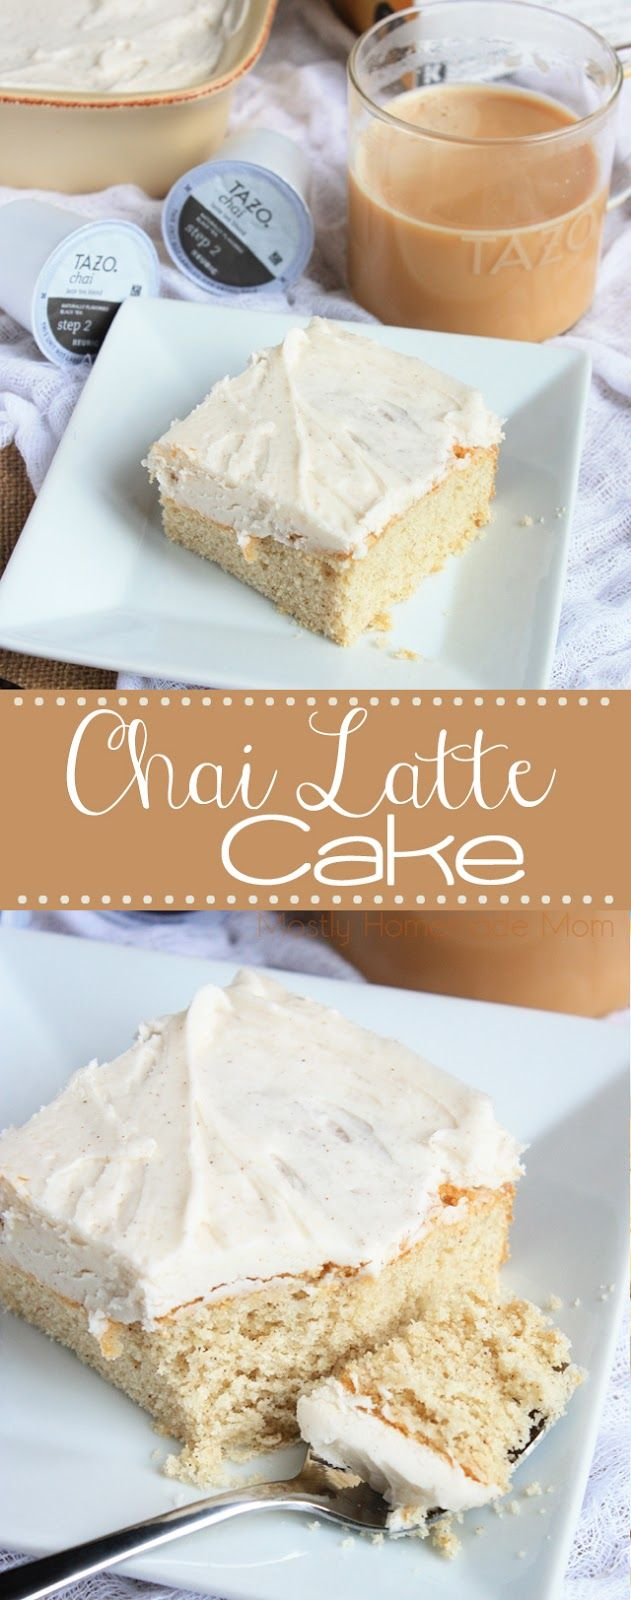 This fun twist on a coffee cake uses cardamom, cinnamon, ginger, and cloves just like a hot cup of chai tea! Top this amazing cake with a cinnamon buttercream frosting, and you have a perfect dessert recipe for brunch, too!